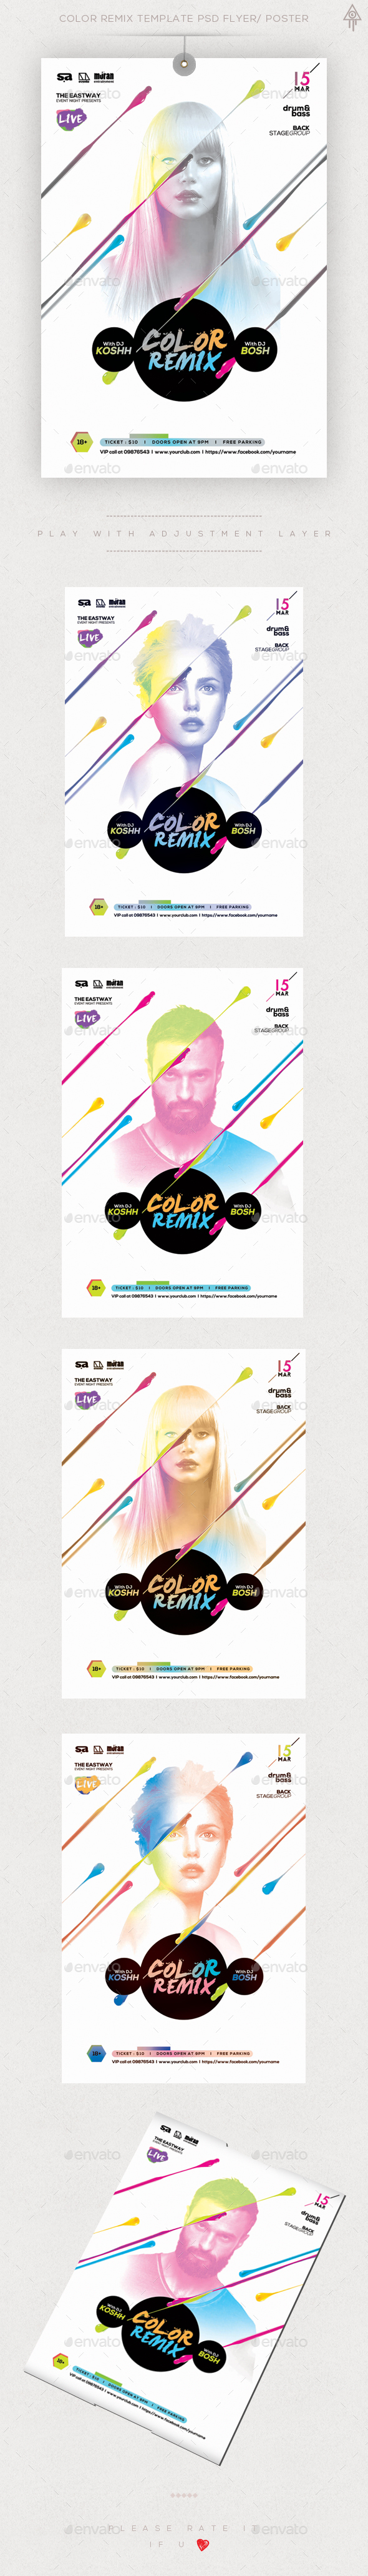 Color Remix Guest Dj Flyer Template PSD Poster/ Flyer - Clubs & Parties Events